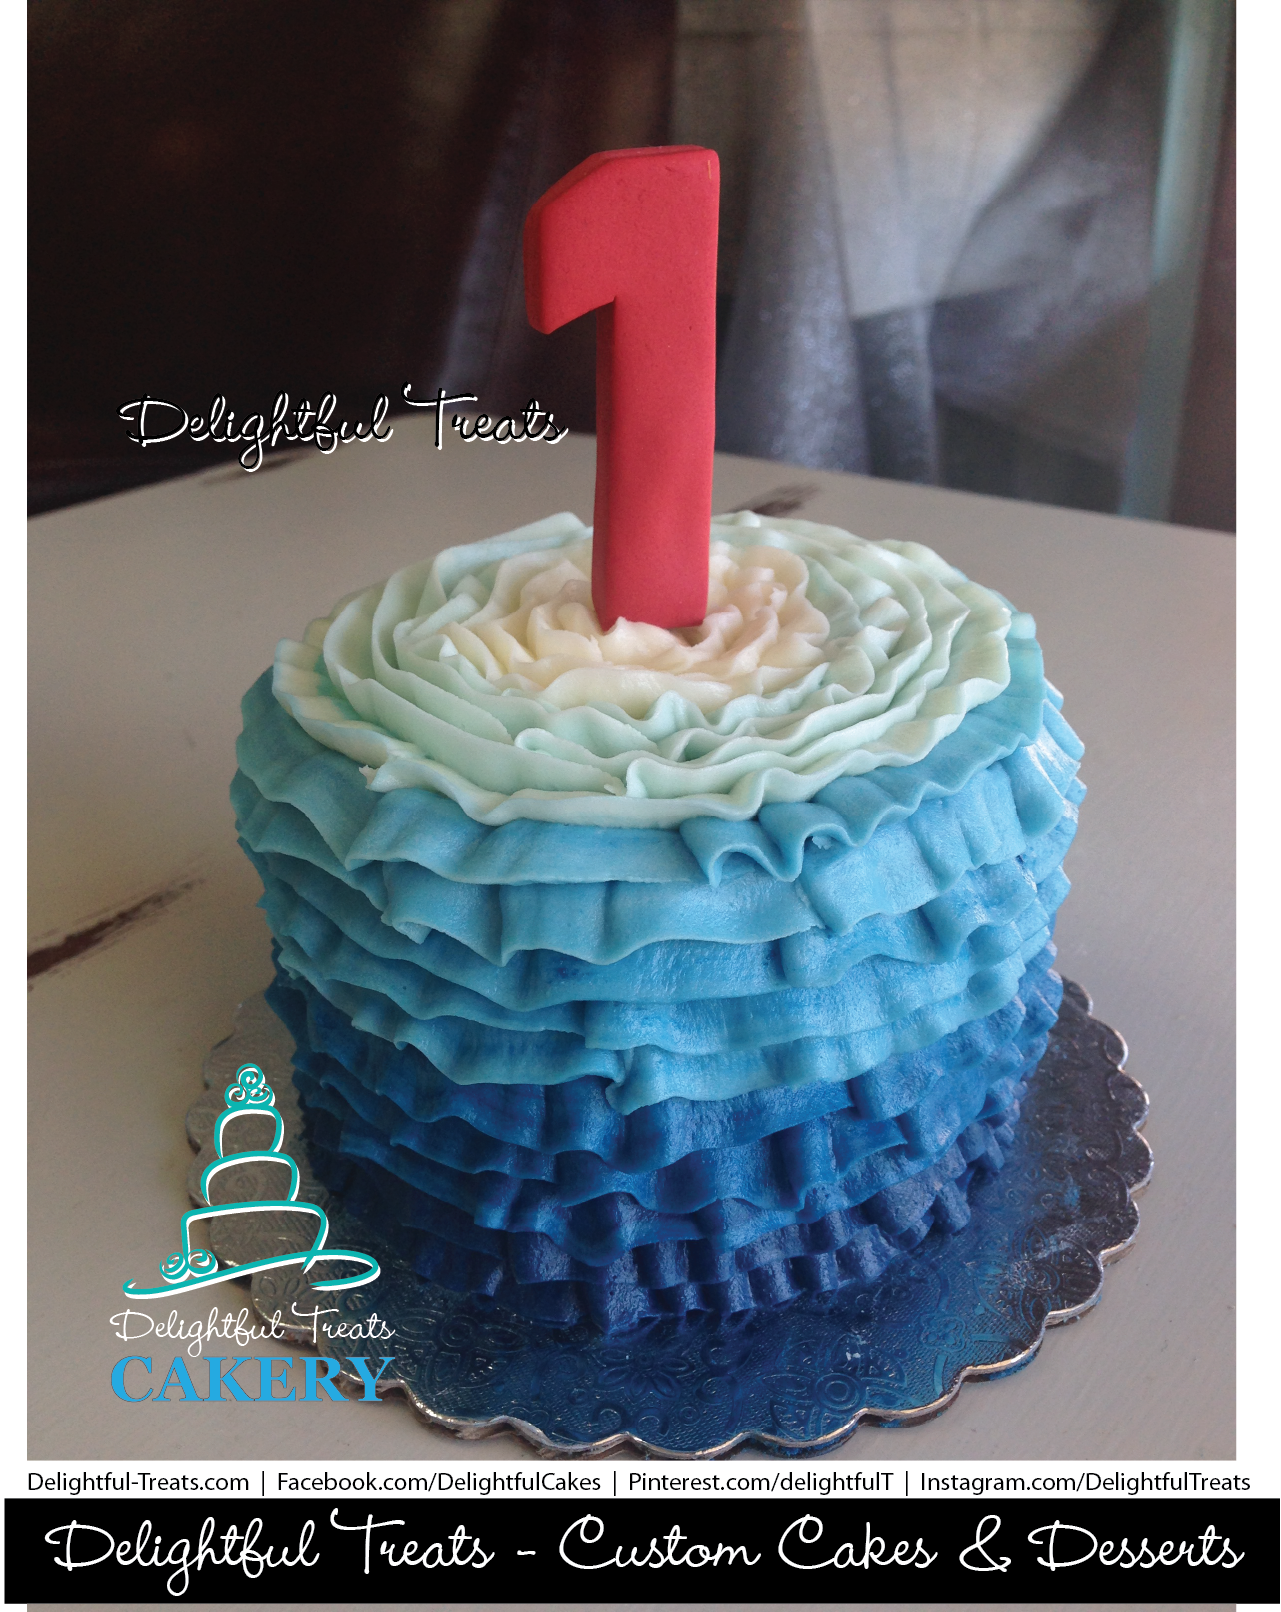 Ombre Buttercream Ruffle Navy Blue To White With Red Gumpaste First Birthday Cake By Delightful Treats Cakery Orlando